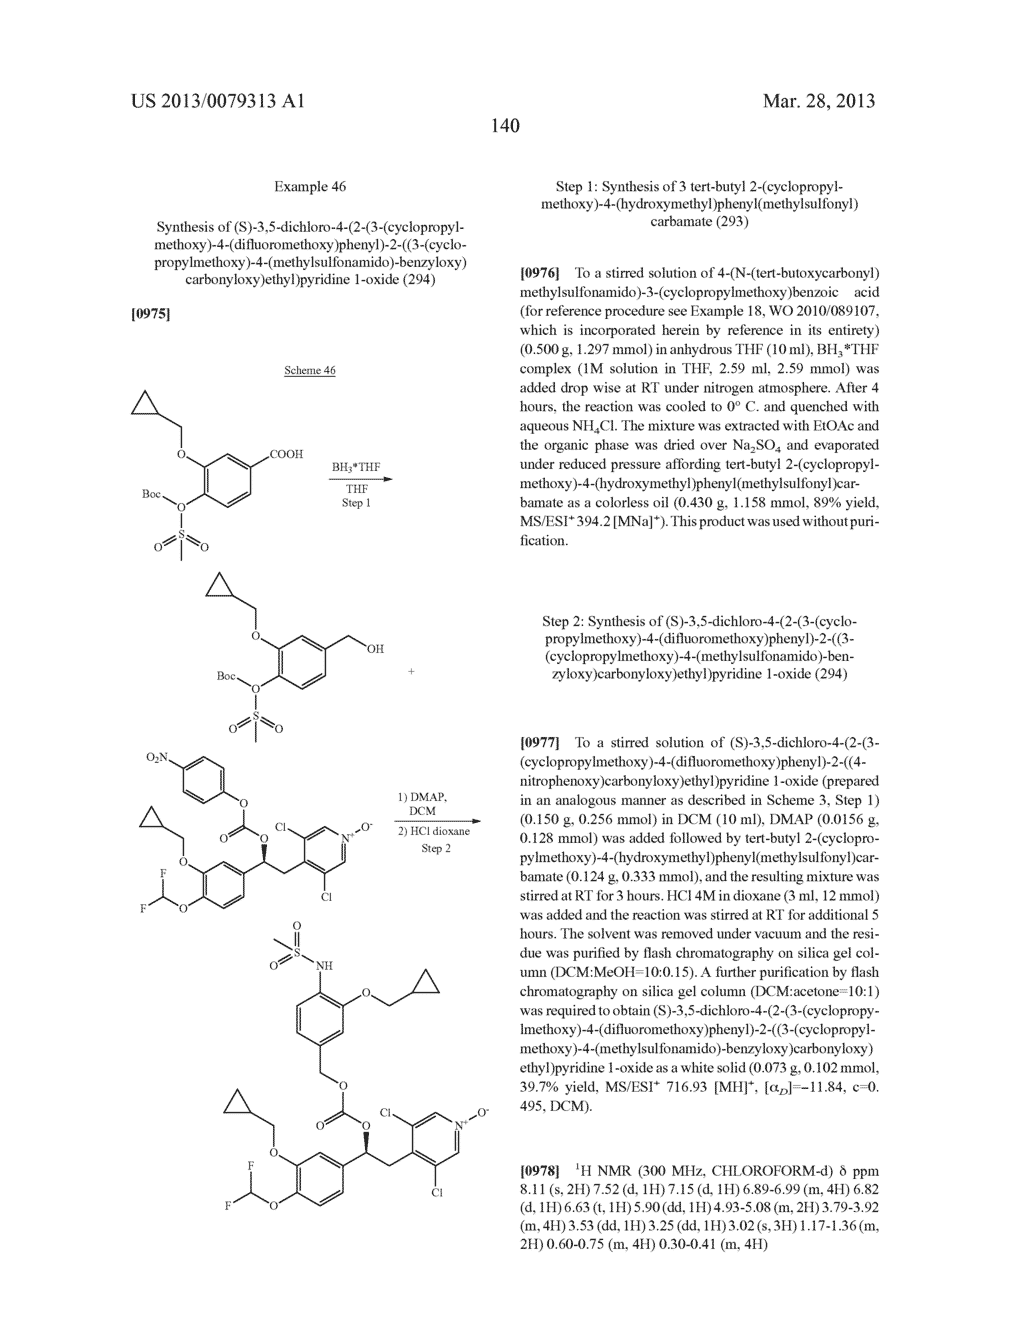 DERIVATIVES OF 1-PHENYL-2-PYRIDINYL ALKYL ALCOHOLS AS PHOSPHODIESTERASE     INHIBITORS - diagram, schematic, and image 141